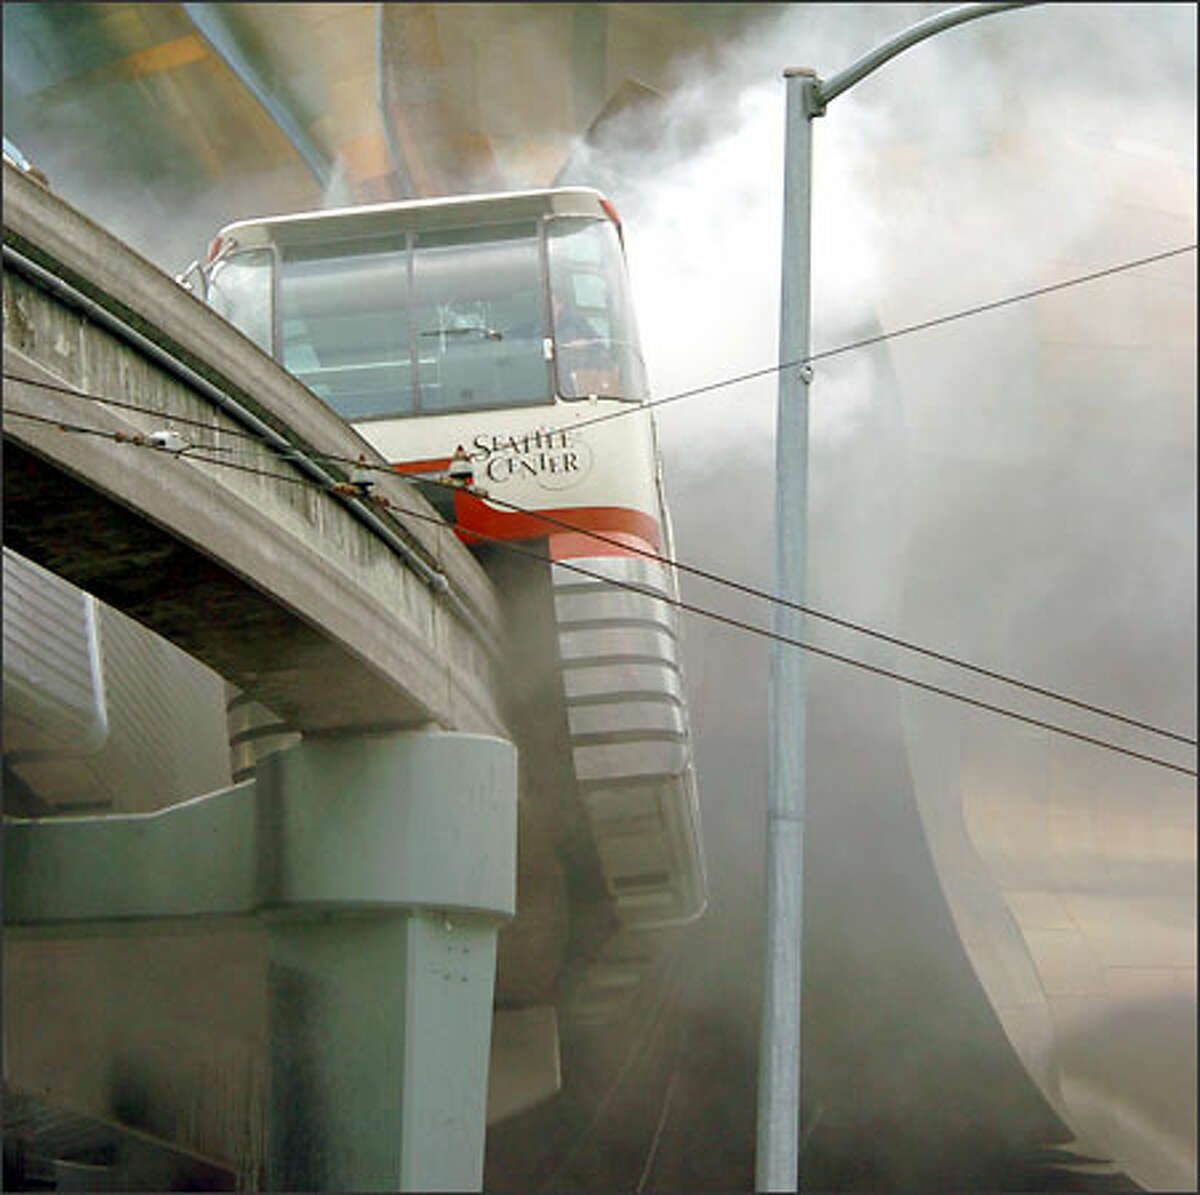 Smoke pours out of one of the Monorail trains after it caught on fire near the Seattle Center. Eight riders and one firefighter were sent to Harborview Medical Center.